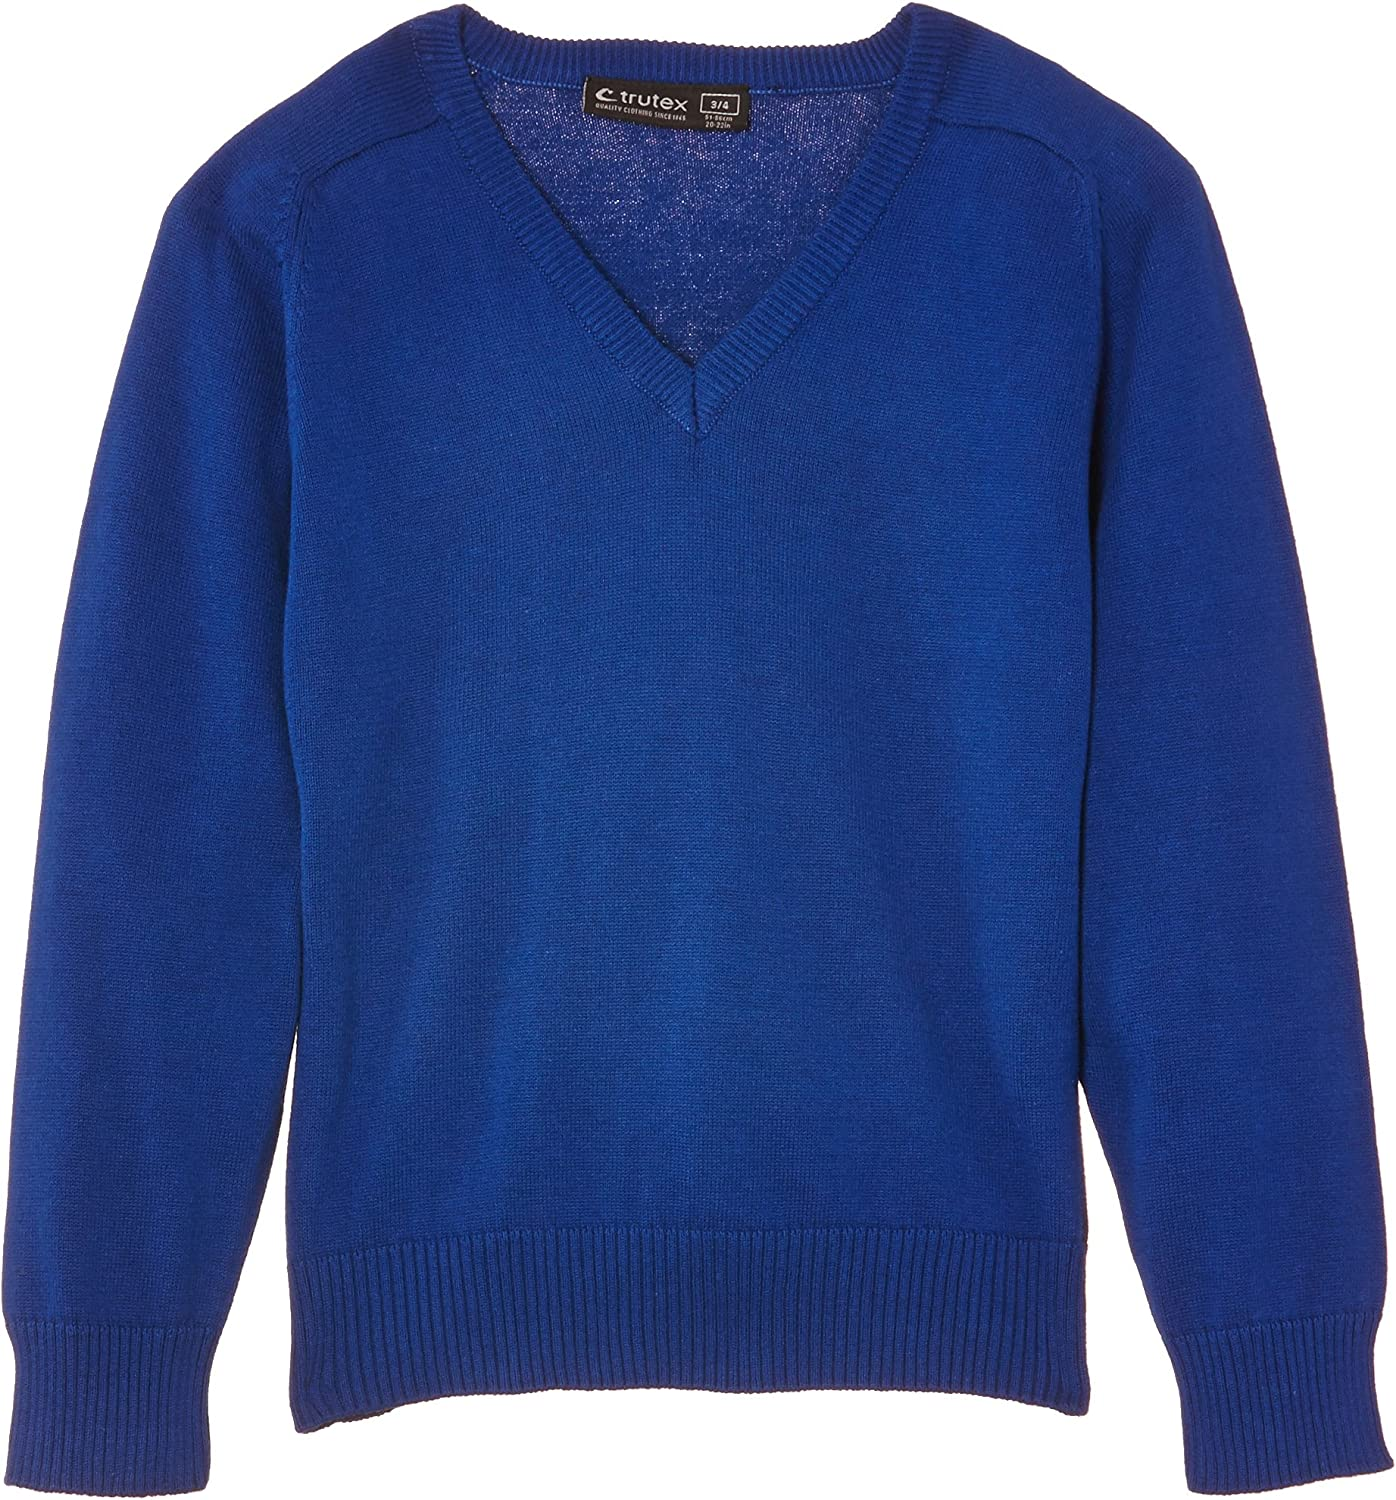 KIDS 6-7 years old HIGH NECK T-SHIRT// POLO NECK JUMPER 100/% COTTON SALE 122cm